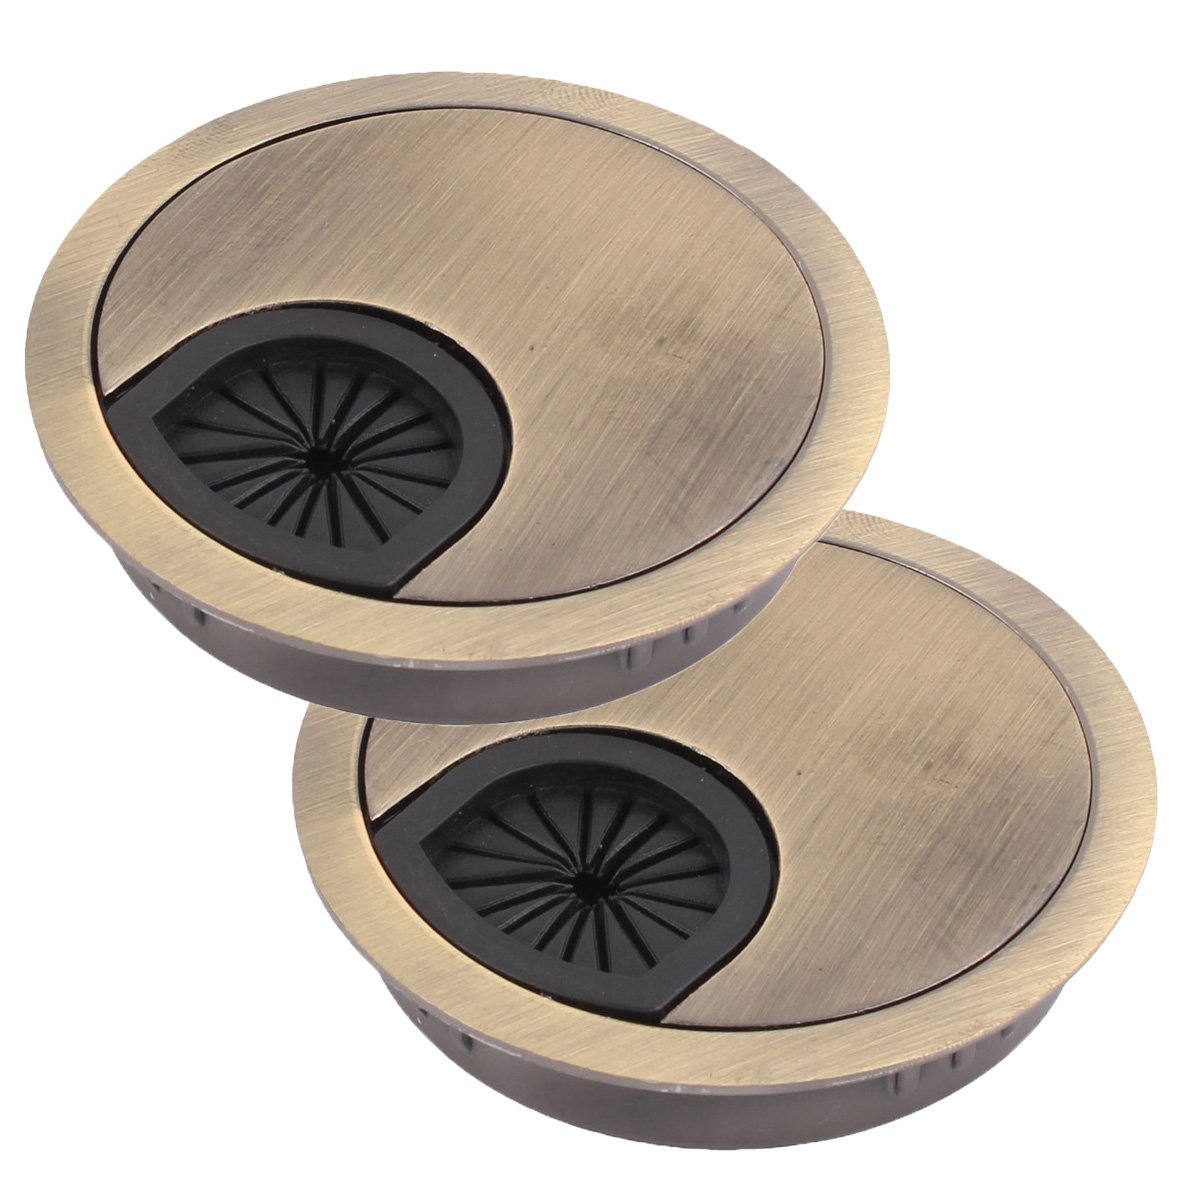 Antrader Cable Grommet Computer Desktop Metal Circle Grommets Nesting Wire Organizer Cable Hole Round Cover Cap 60mm Diameter Bronze Tone 2 Pack